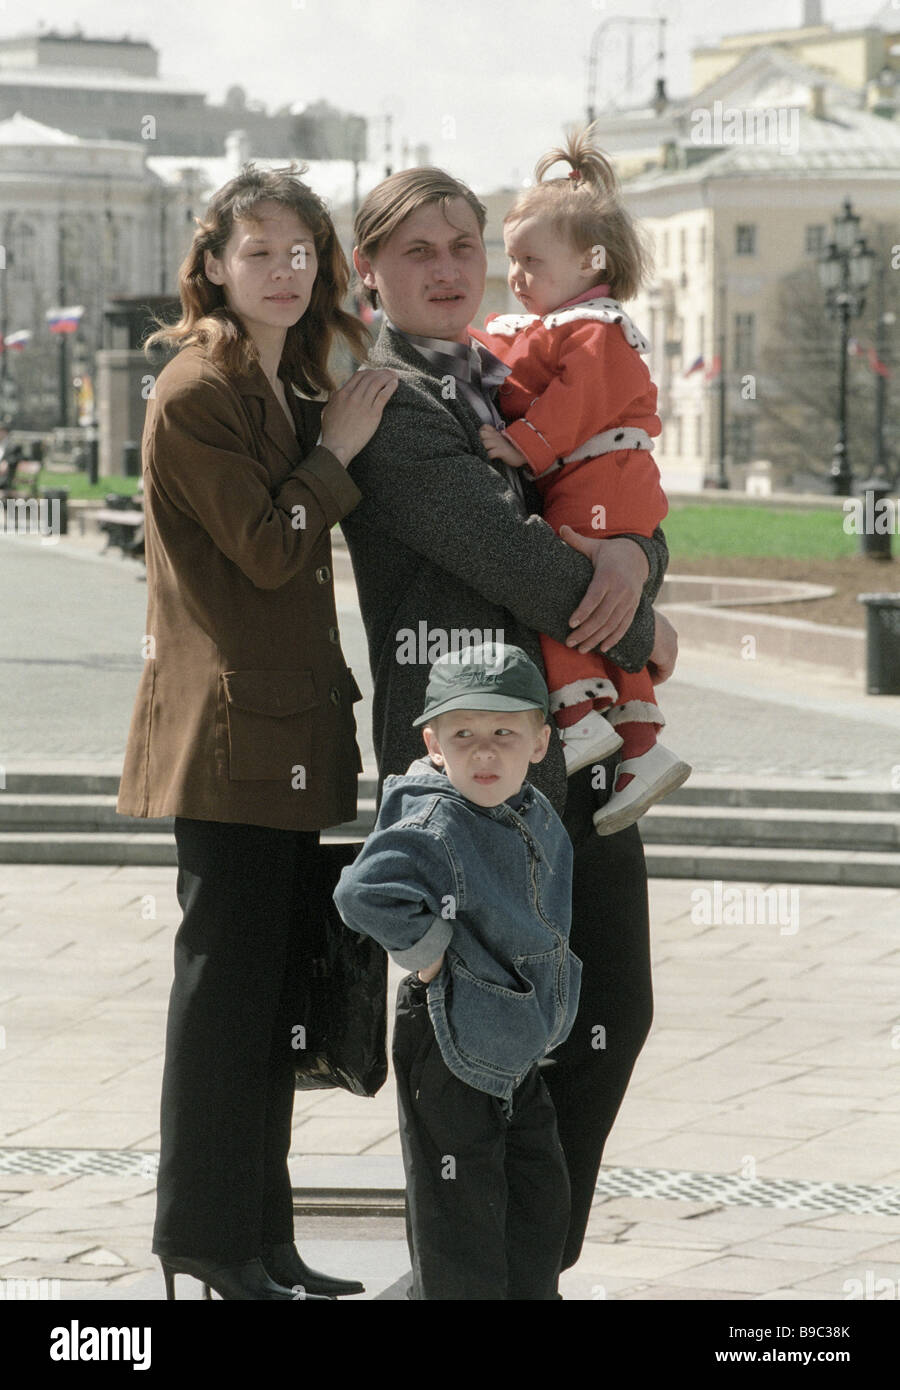 A young family promenades in Moscow - Stock Image